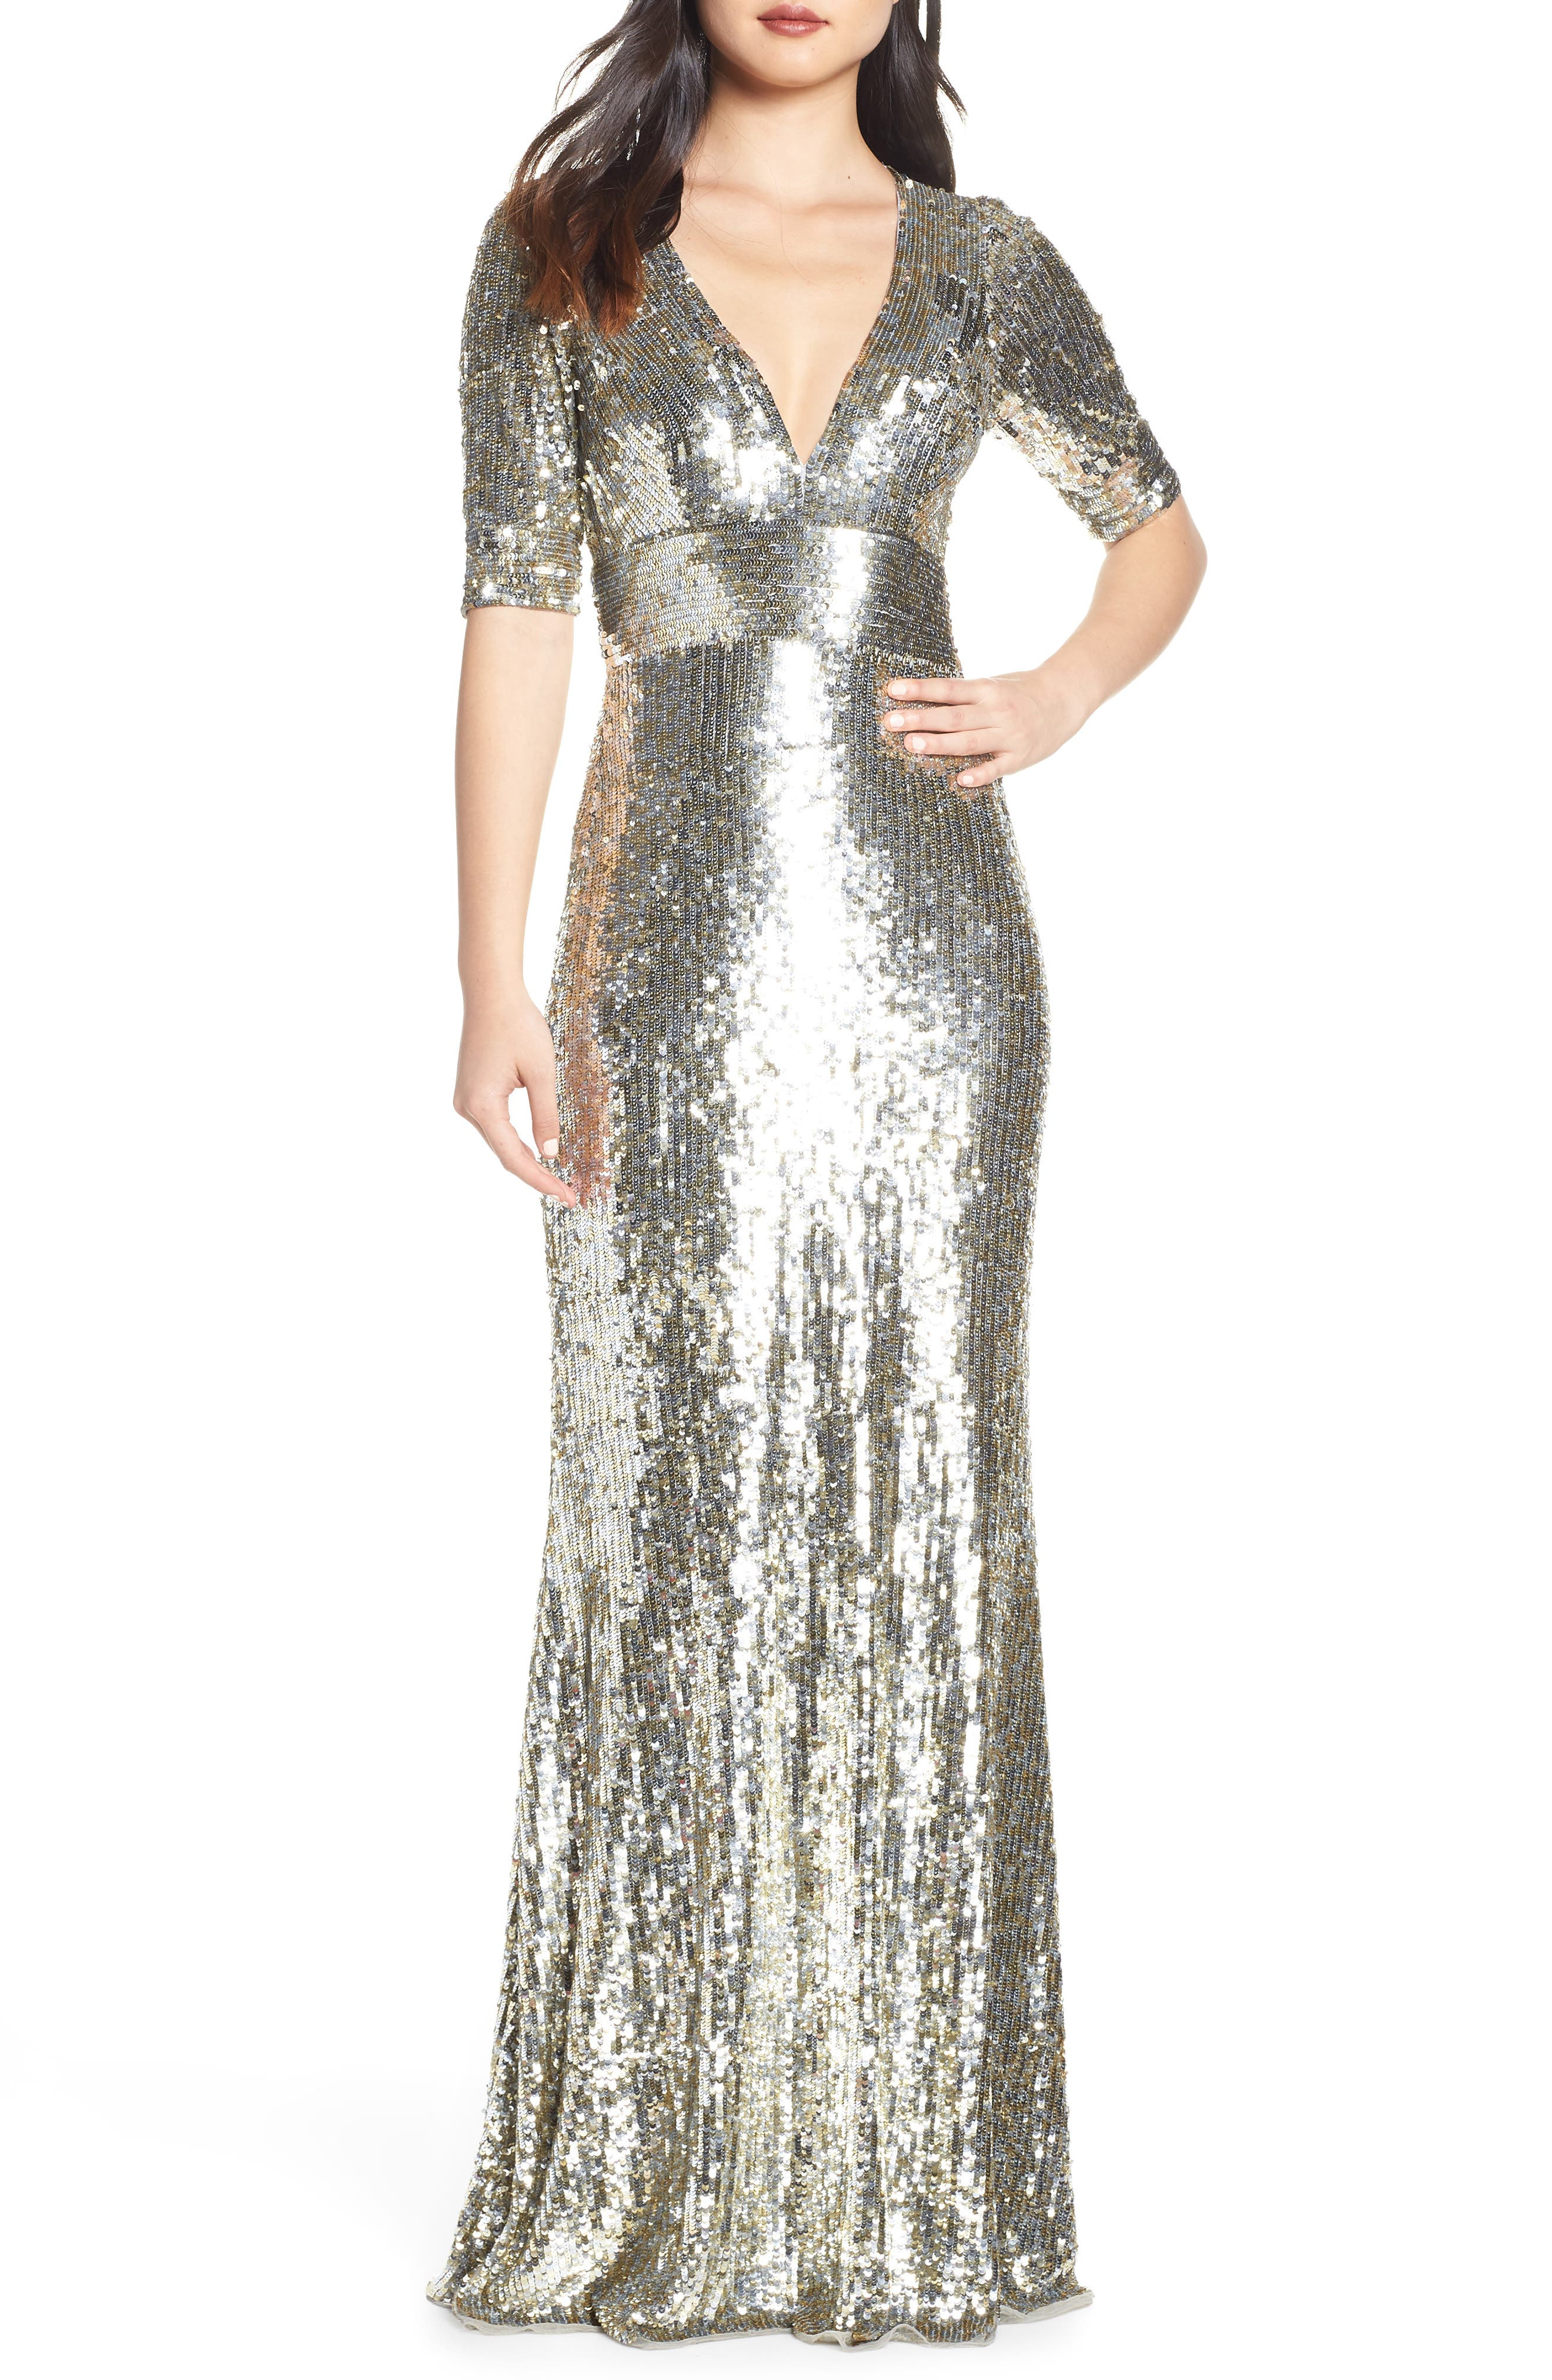 MAC DUGGAL, Sequin Stripe Evening Dress, Main thumbnail 1, color, PLATINUM